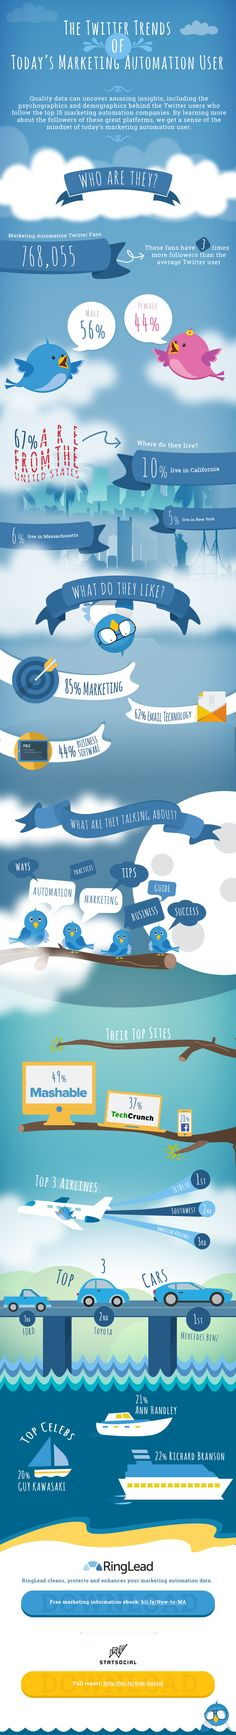 The Twitter Trends of Today's Marketing Automation User #infographic #Twitter #SocialMedia #Marketing